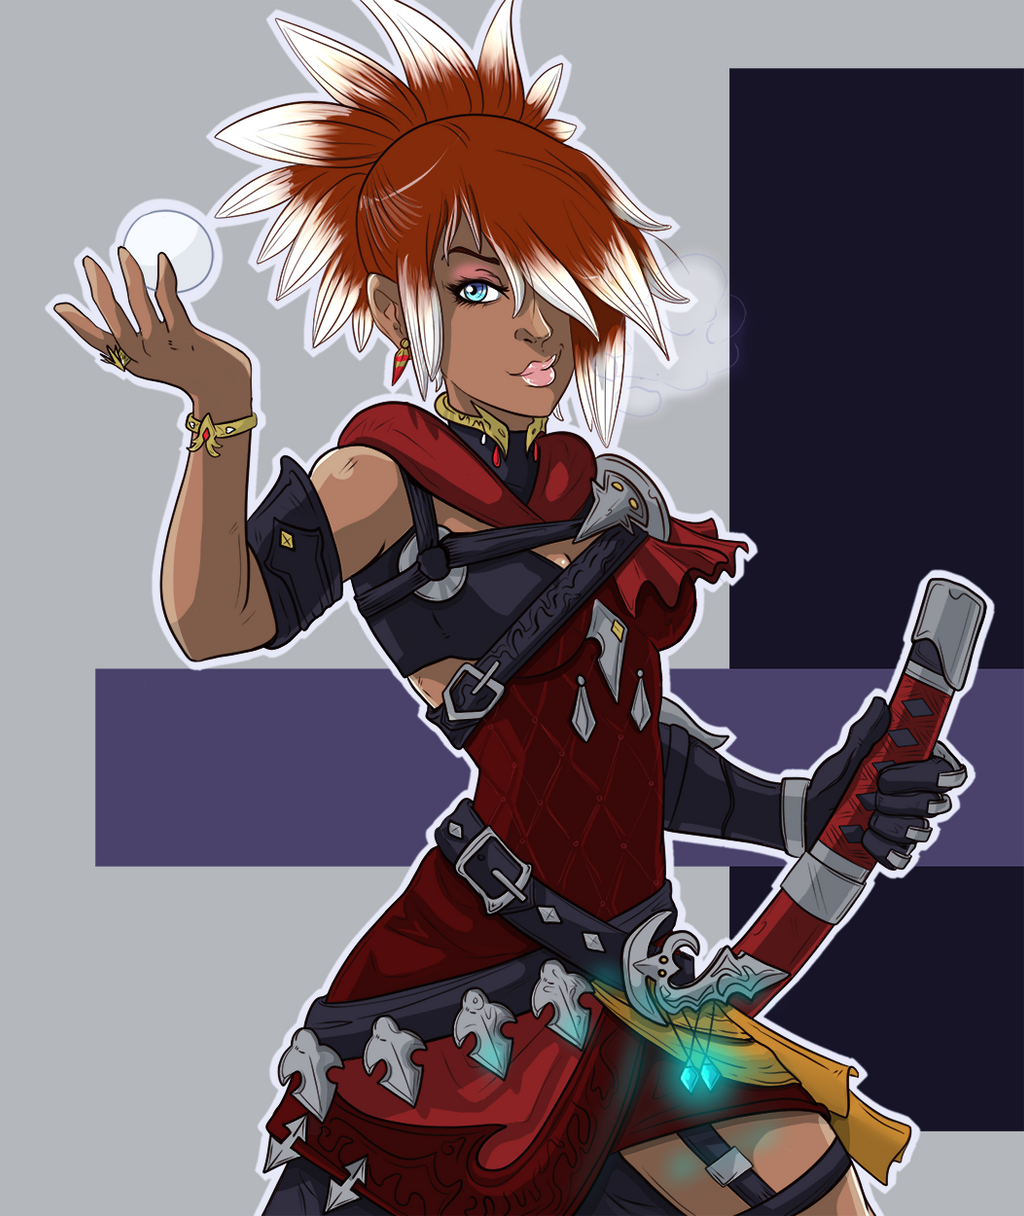 [Image: akasha_xueqi_by_zoetrooper-dbz5ky6.png]